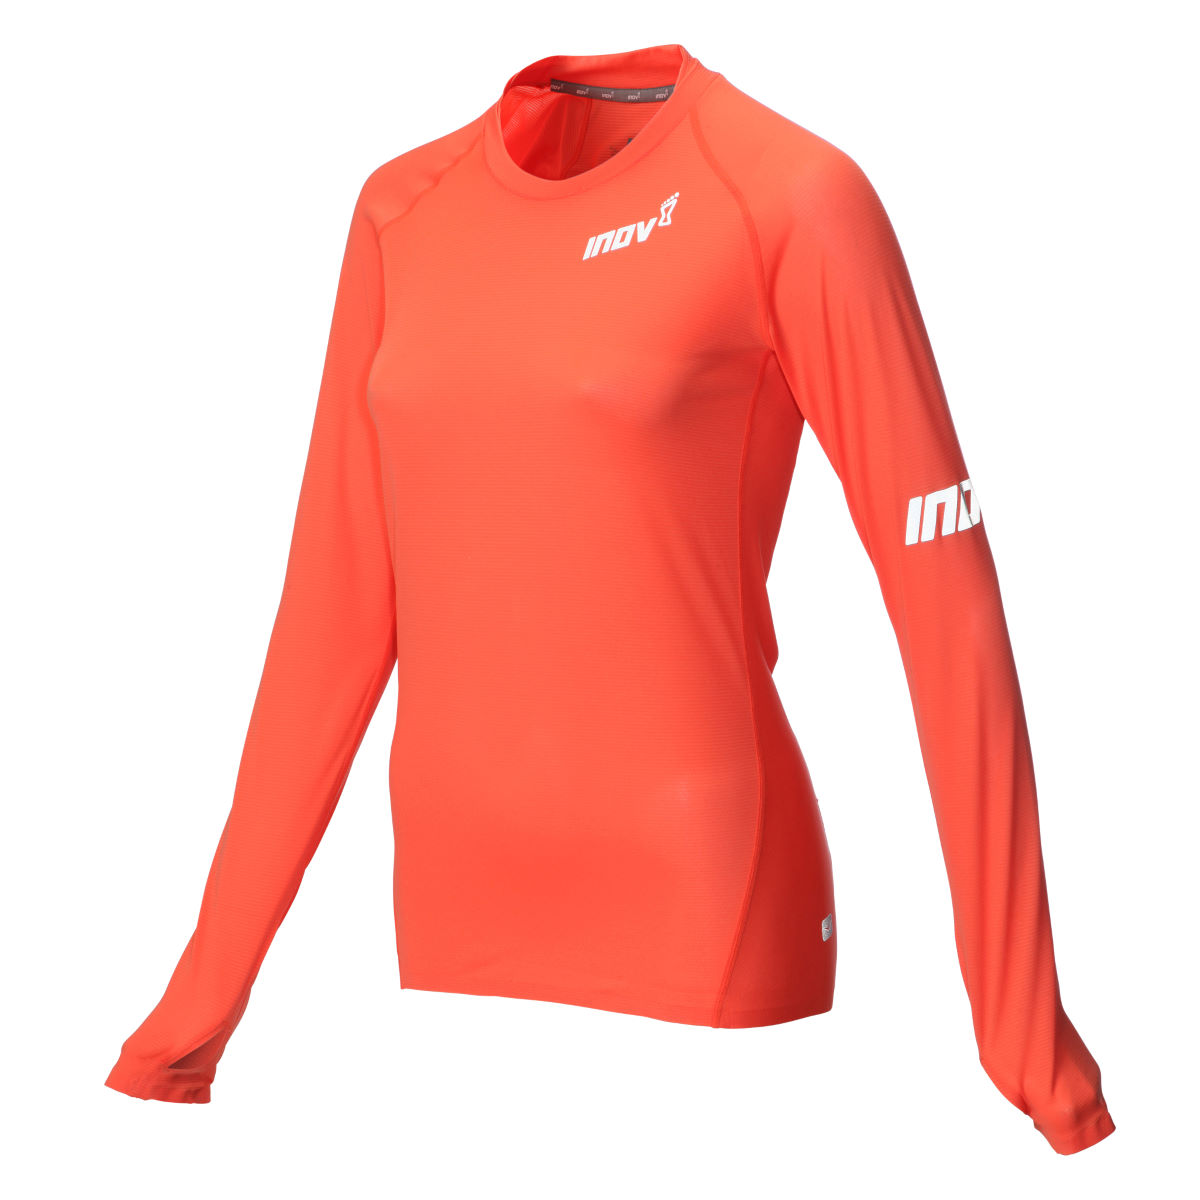 Maillot de corps Femme Inov-8 AT/C (manches longues) - XL Coral